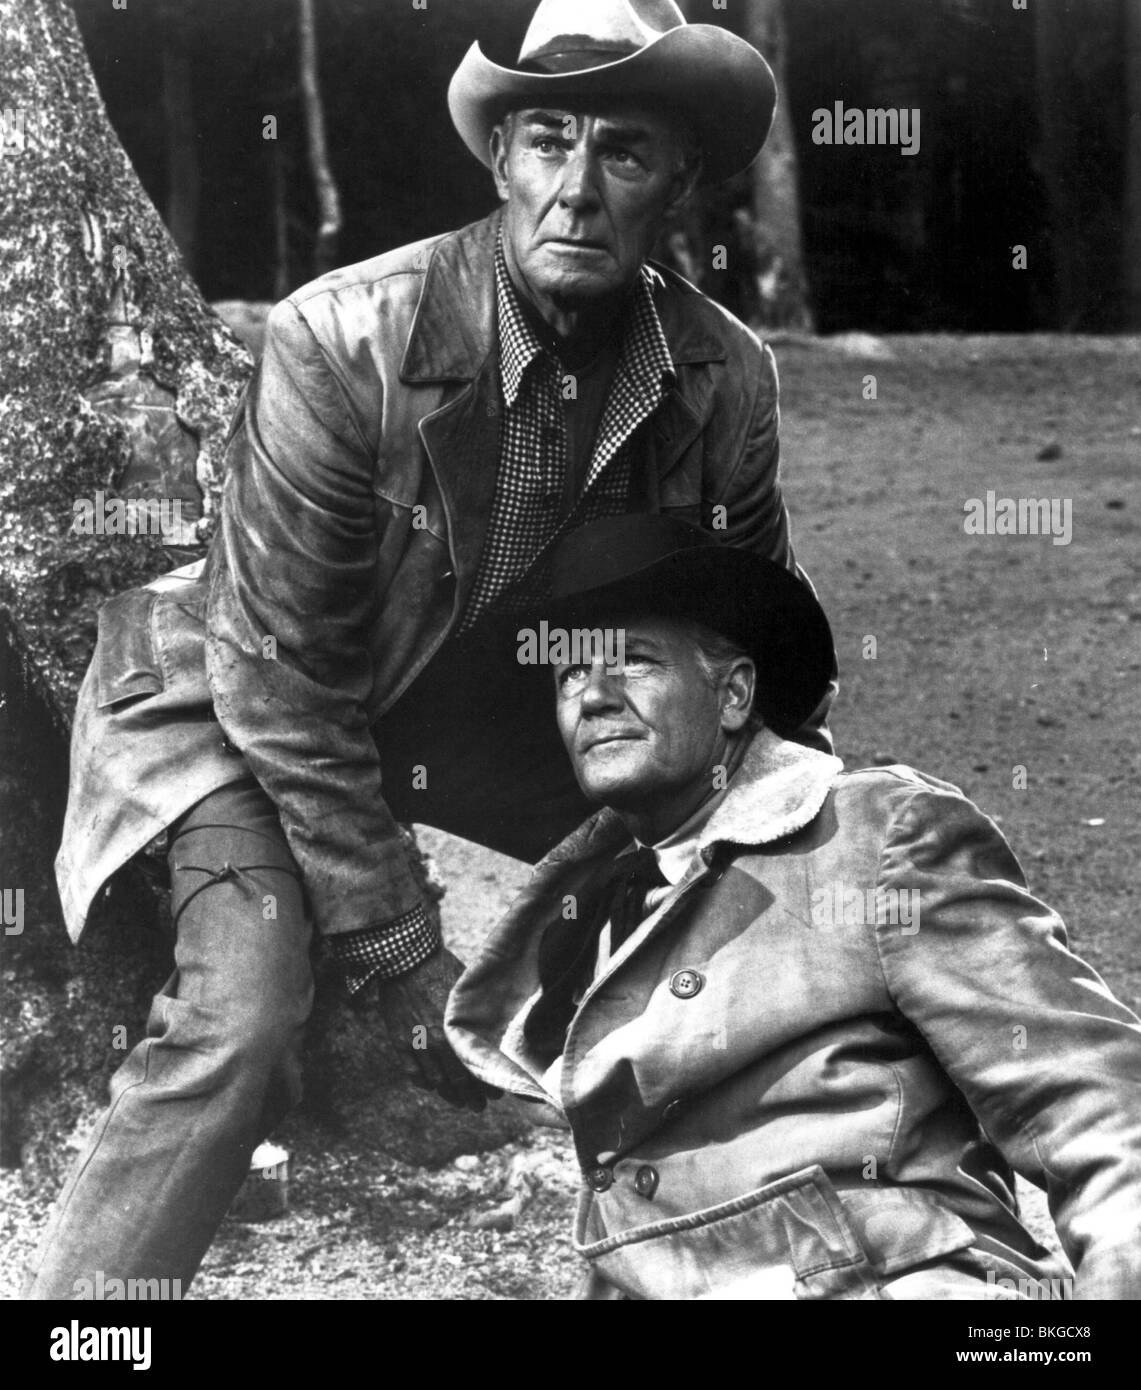 GUNS IN THE AFTERNOON (1962) RIDE THE HIGH COUNTRY (ALT) RANDOLPH SCOTT GITA 001-03 - Stock Image